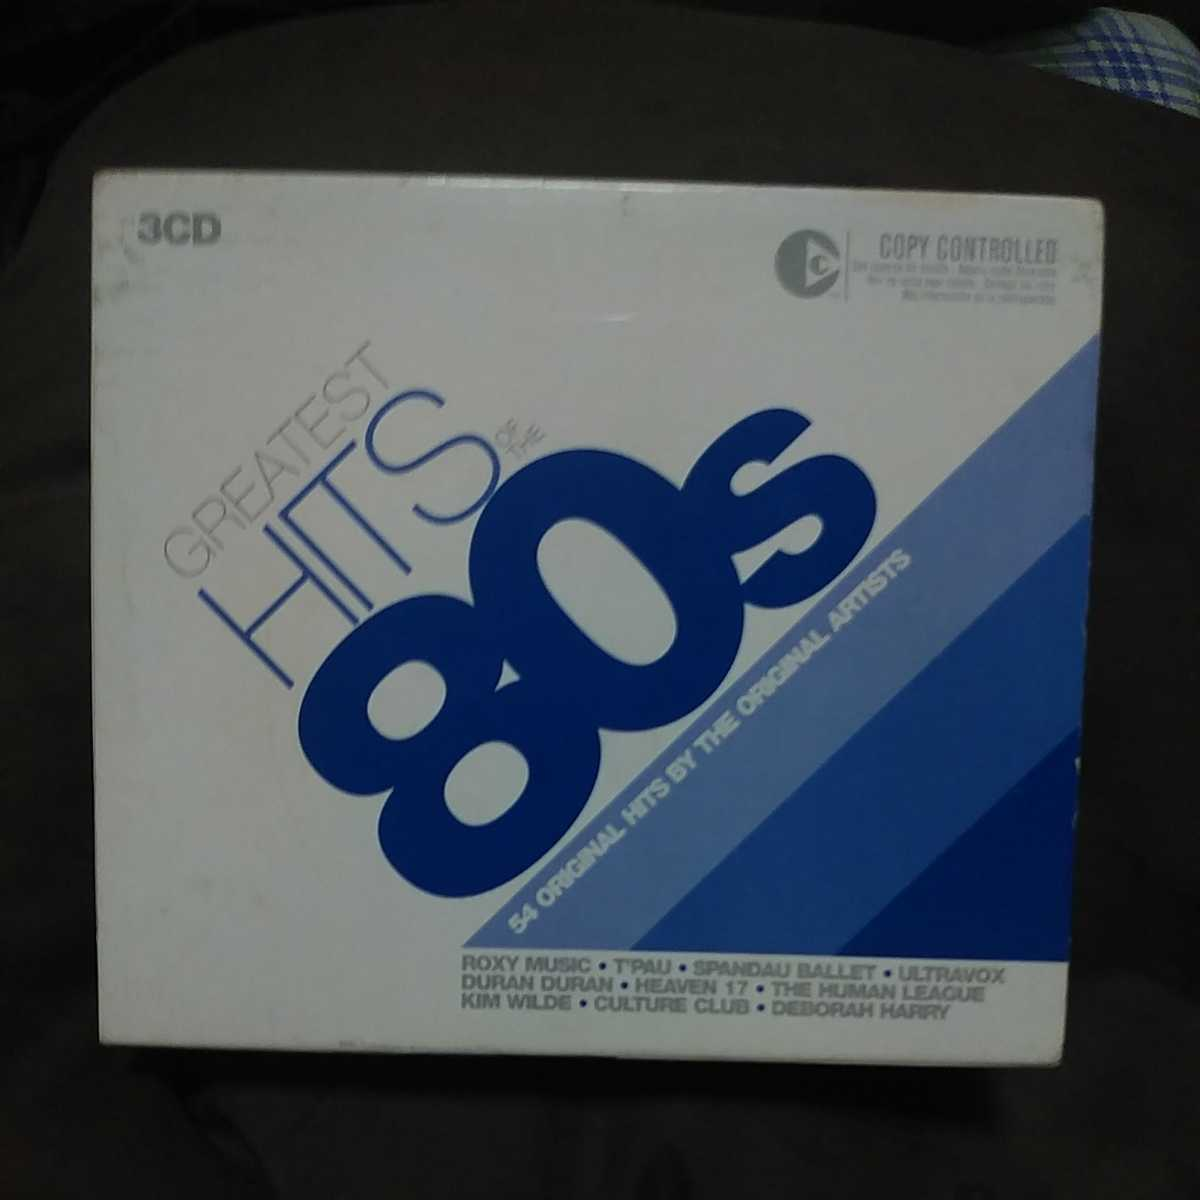 『GREATEST HITS 80's』DURAN DURAN/ULTRA VOX/BILLY IDOL/CULTURE CLUB/ROXY MUSIC/KAJAGOOGOO/THE SPECIALS/BLONDIE 他